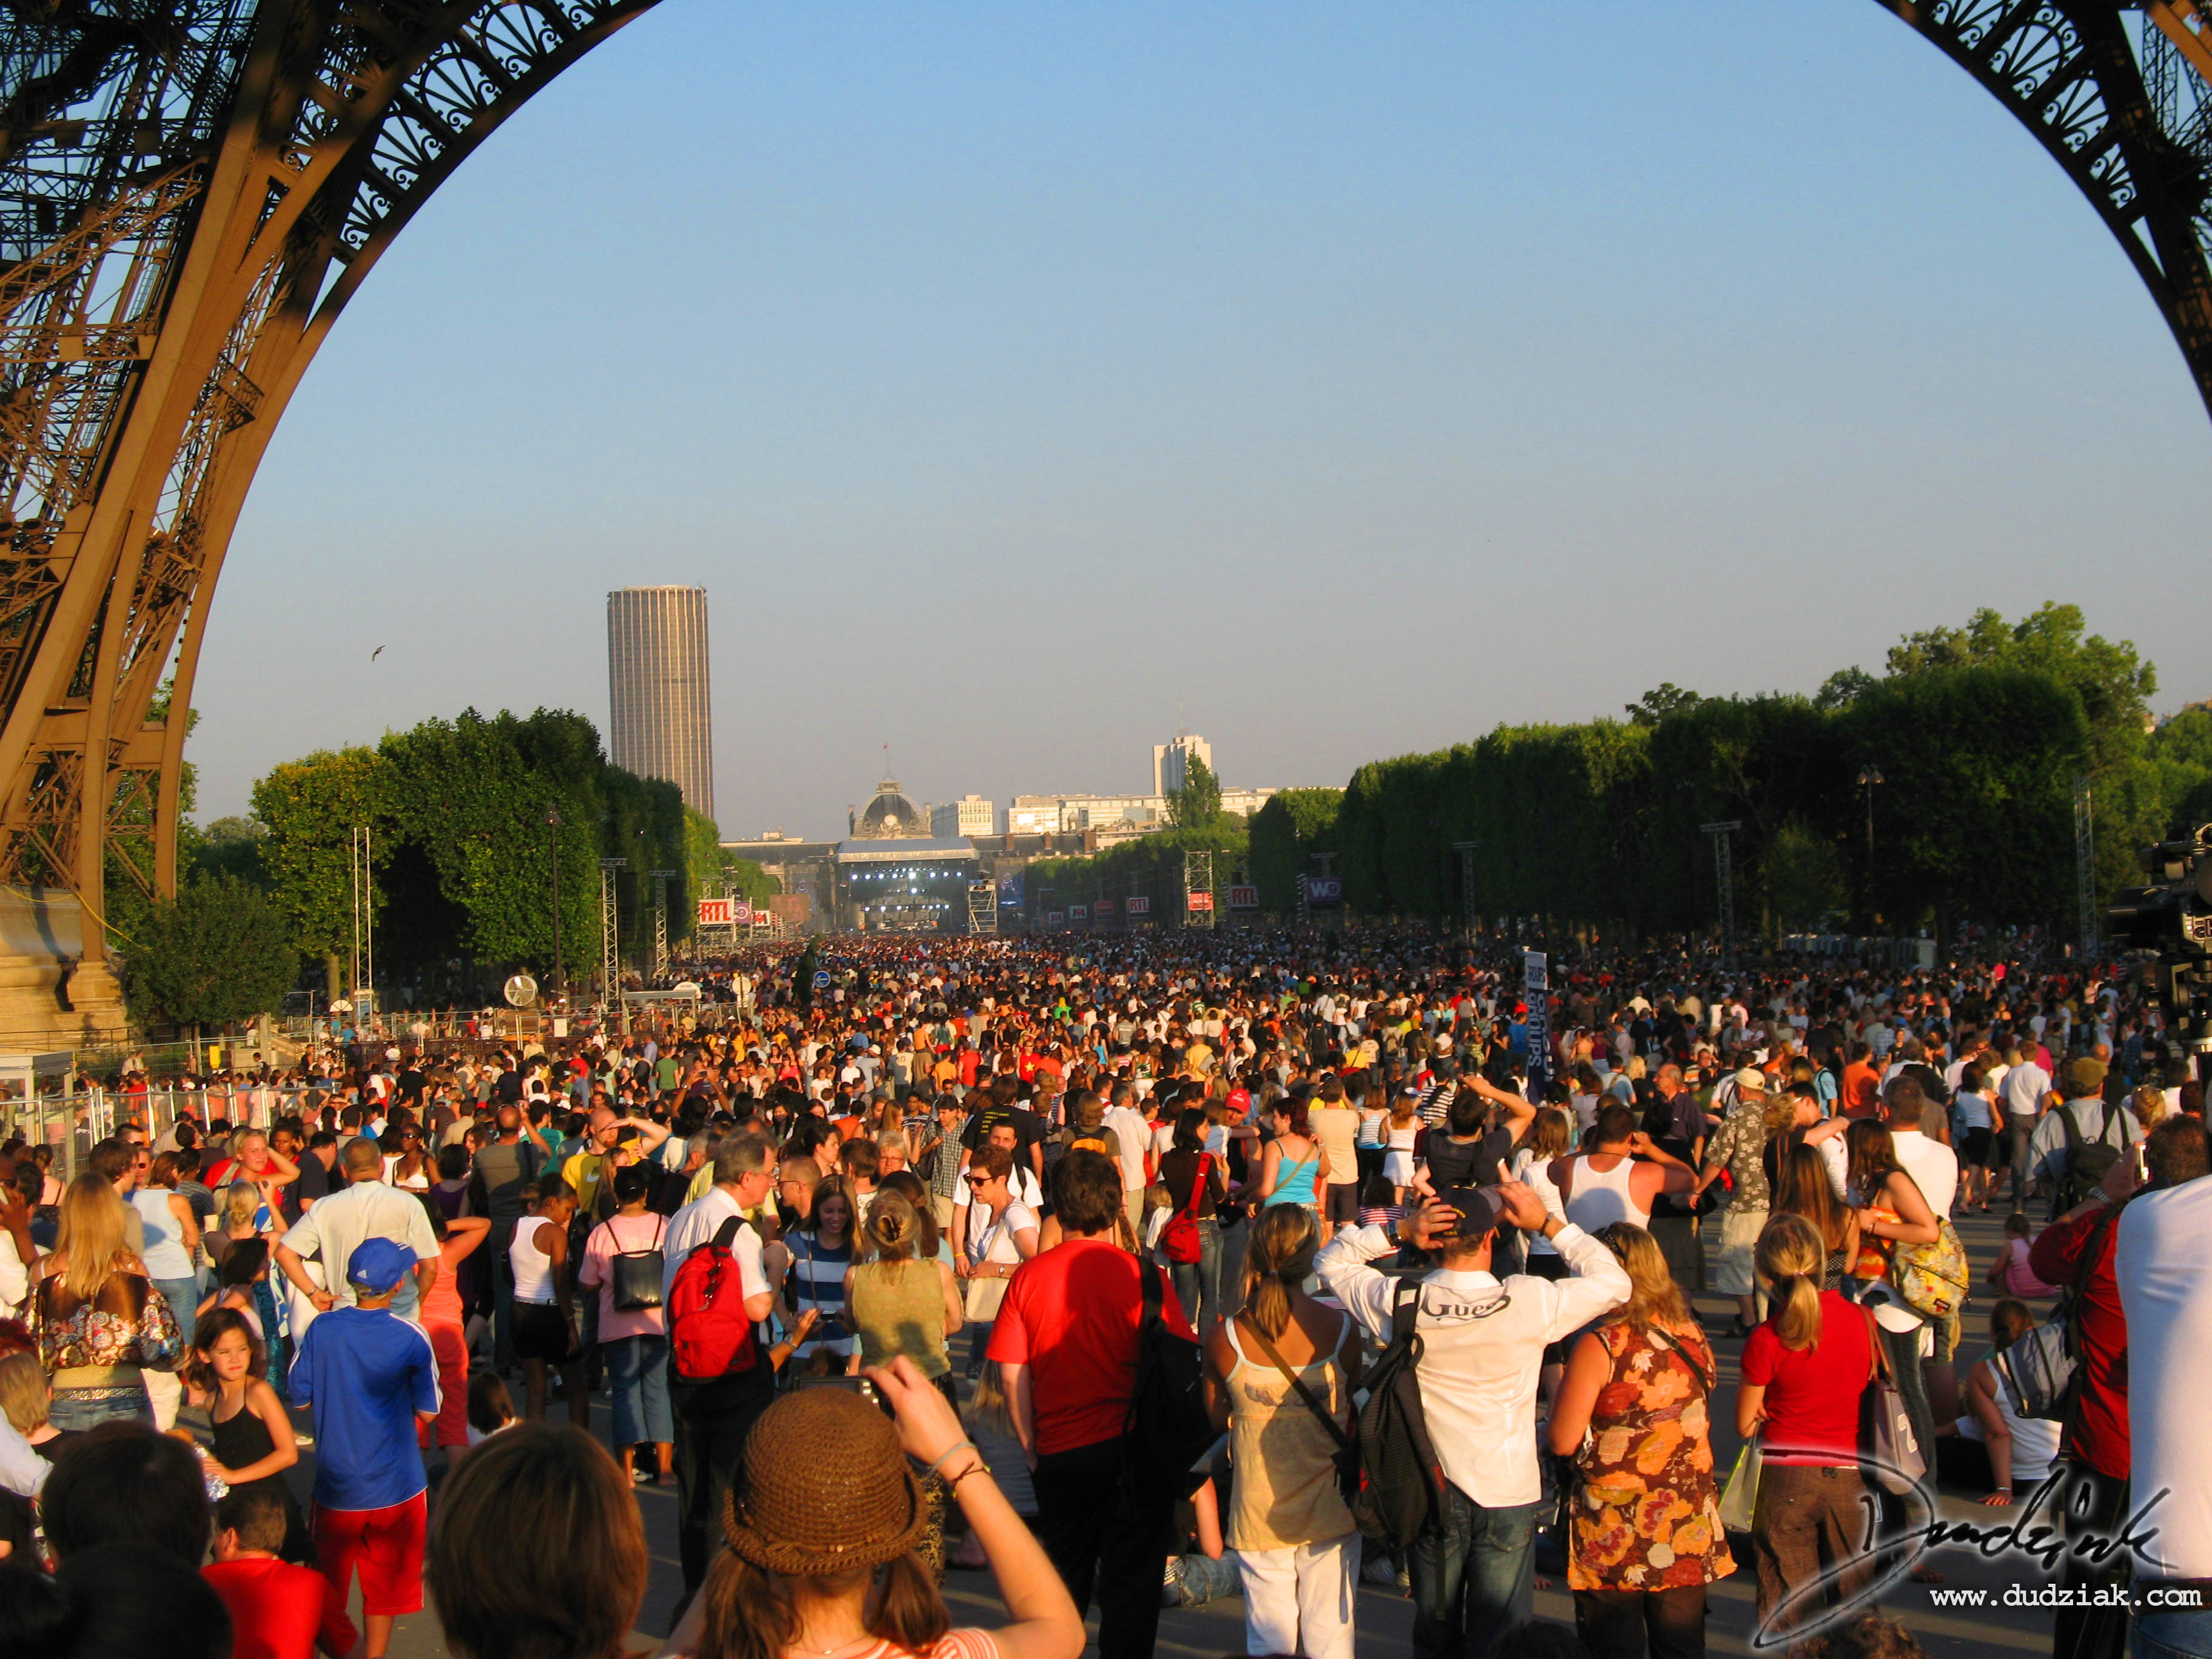 Eiffel Tower,  Quatorze Juillet,  Paris,  Champ de Mars,  France,  Bastille Day